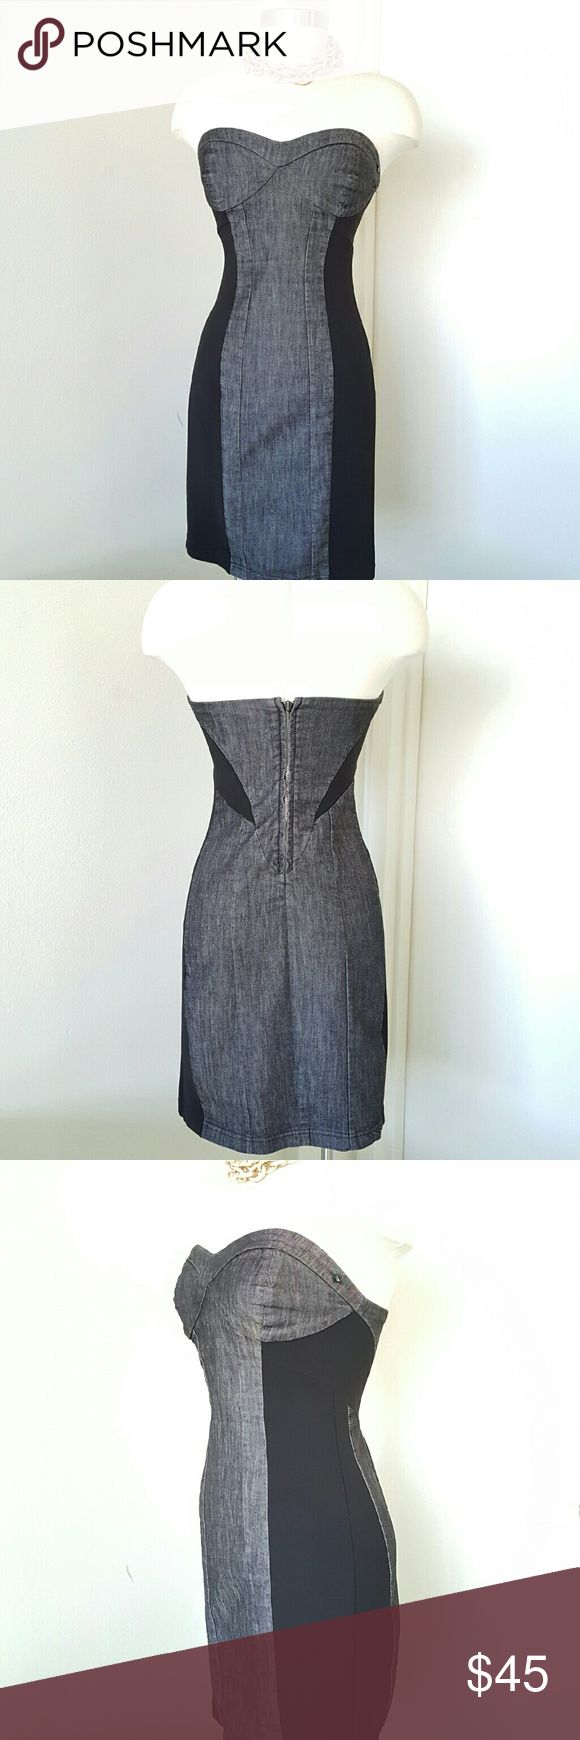 "Diesel Denim Strapless Dress Gorgeous and very stylish dress ,combination of denim fabric and black lycra,  unlined, strapless dress with extension on zipper,  stretchy. Perfect for any occasion, going well with jacket or cardigan.  Measurements are length 34"" bust 33"" waist 28"" hip 34""  Shell  72% cotton 26% rayon 2% elastin Diesel Dresses Strapless"